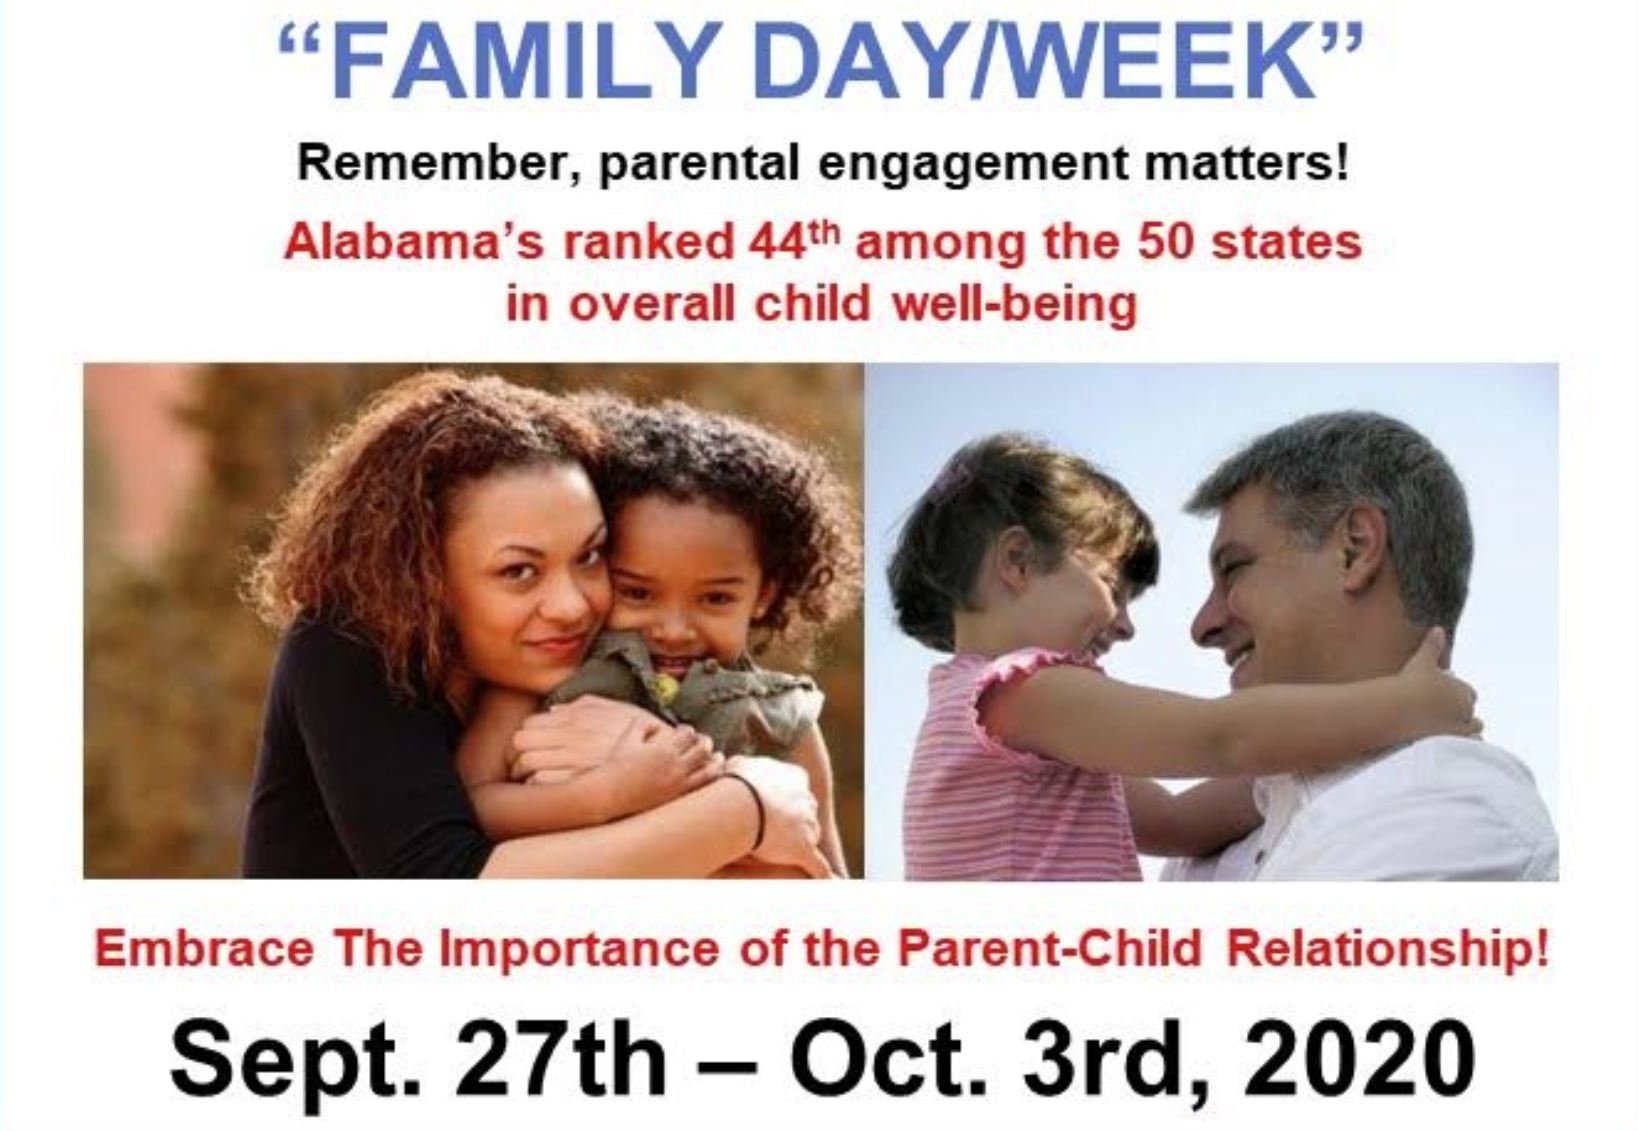 This week is Family Week and Monday is Family Day